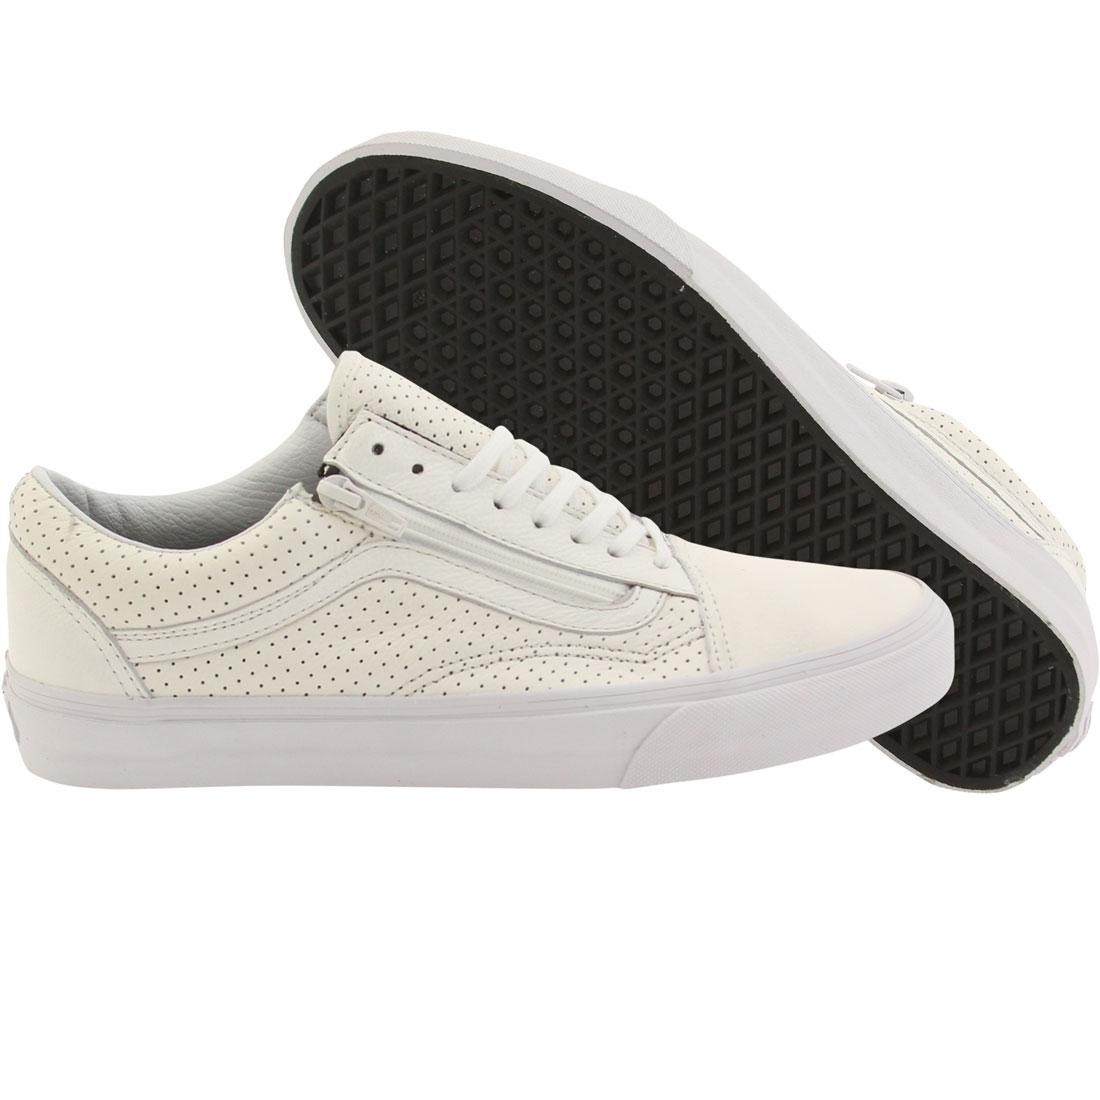 cda788374e57 Vans Men Old Skool Zip - Perf Leather white true white